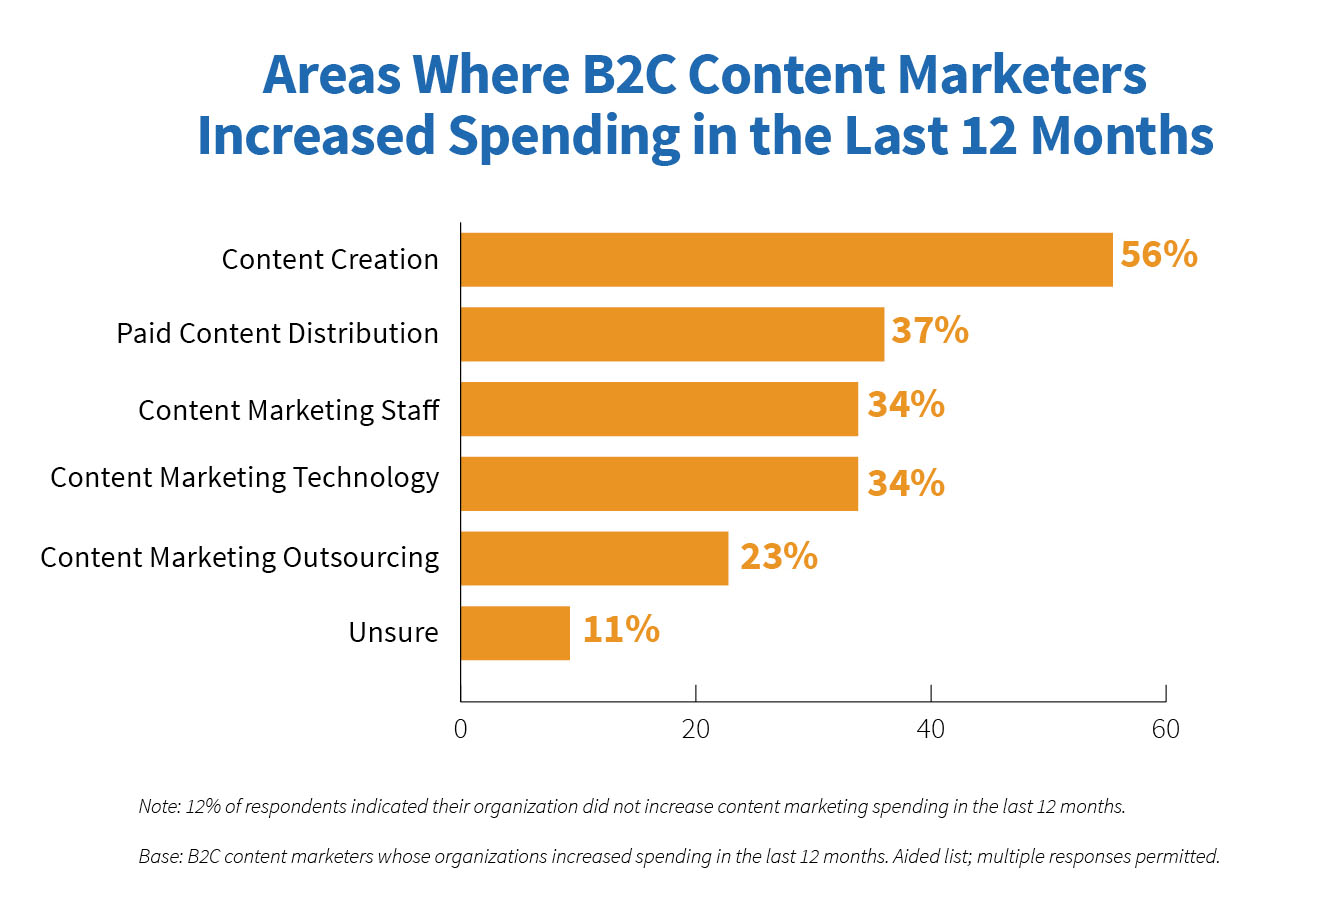 Areas where B2C content marketers increased spending in the past year